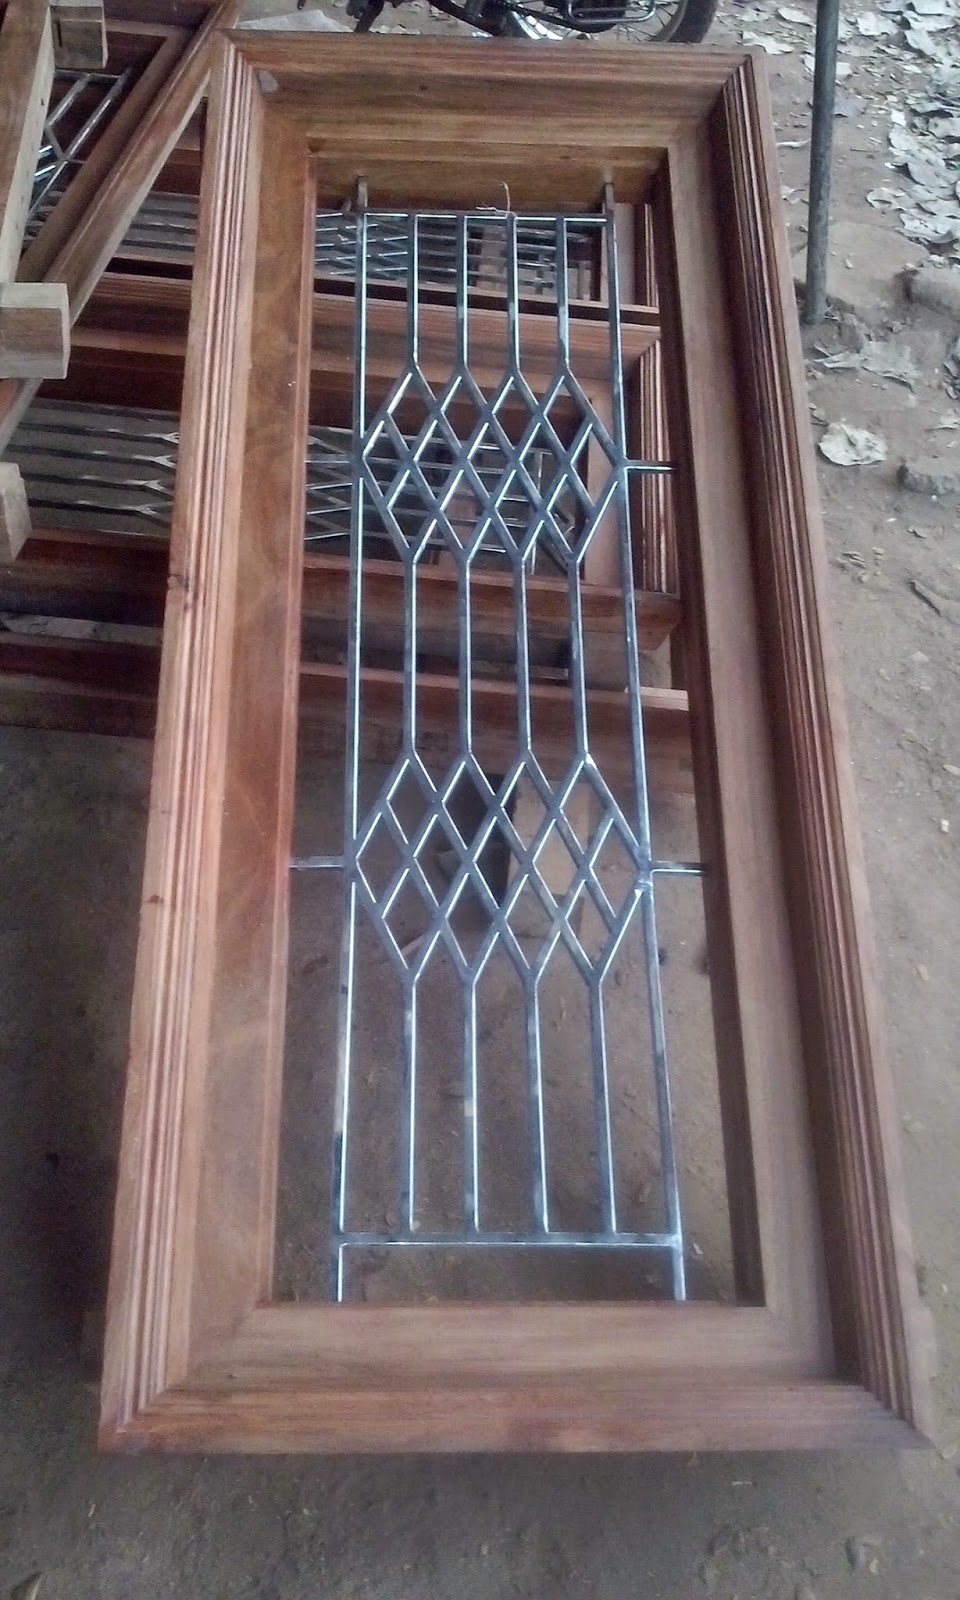 Kerala style carpenter works and designs february 2015 for Window design wood